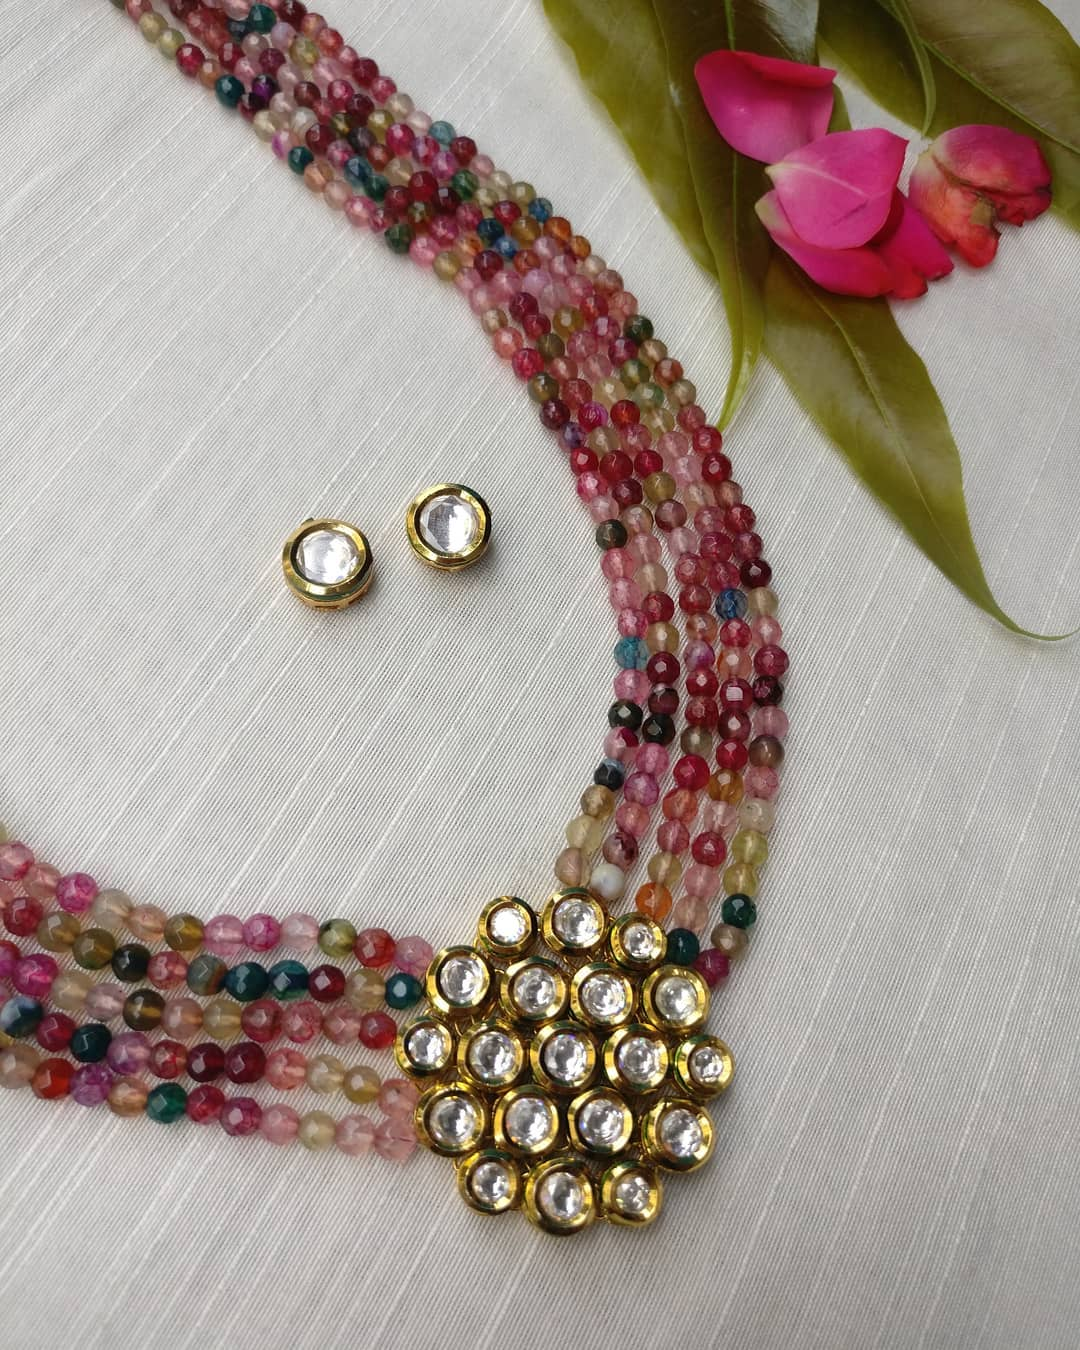 Multicoulour Beads With Kundan Necklace From Rimli Boutique